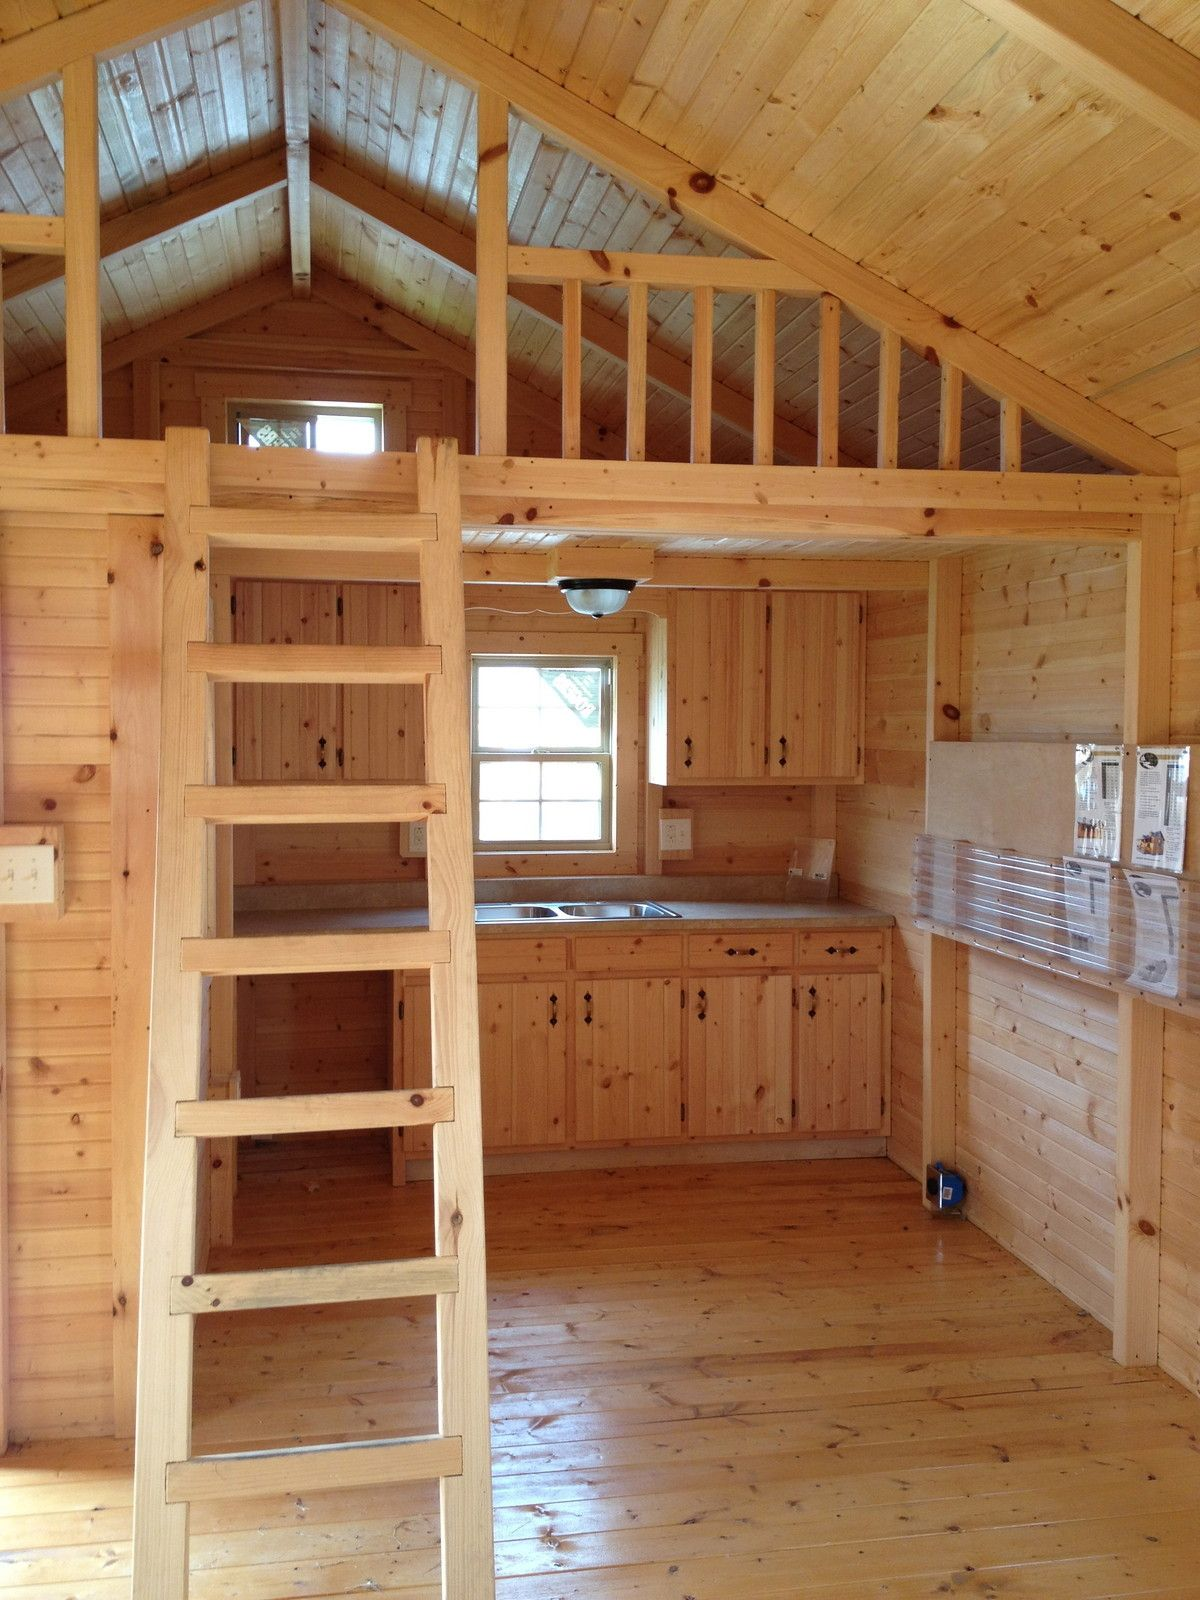 Tiny House ebay 14x24 CABIN KIT Tiny Homes Pinterest Cabin